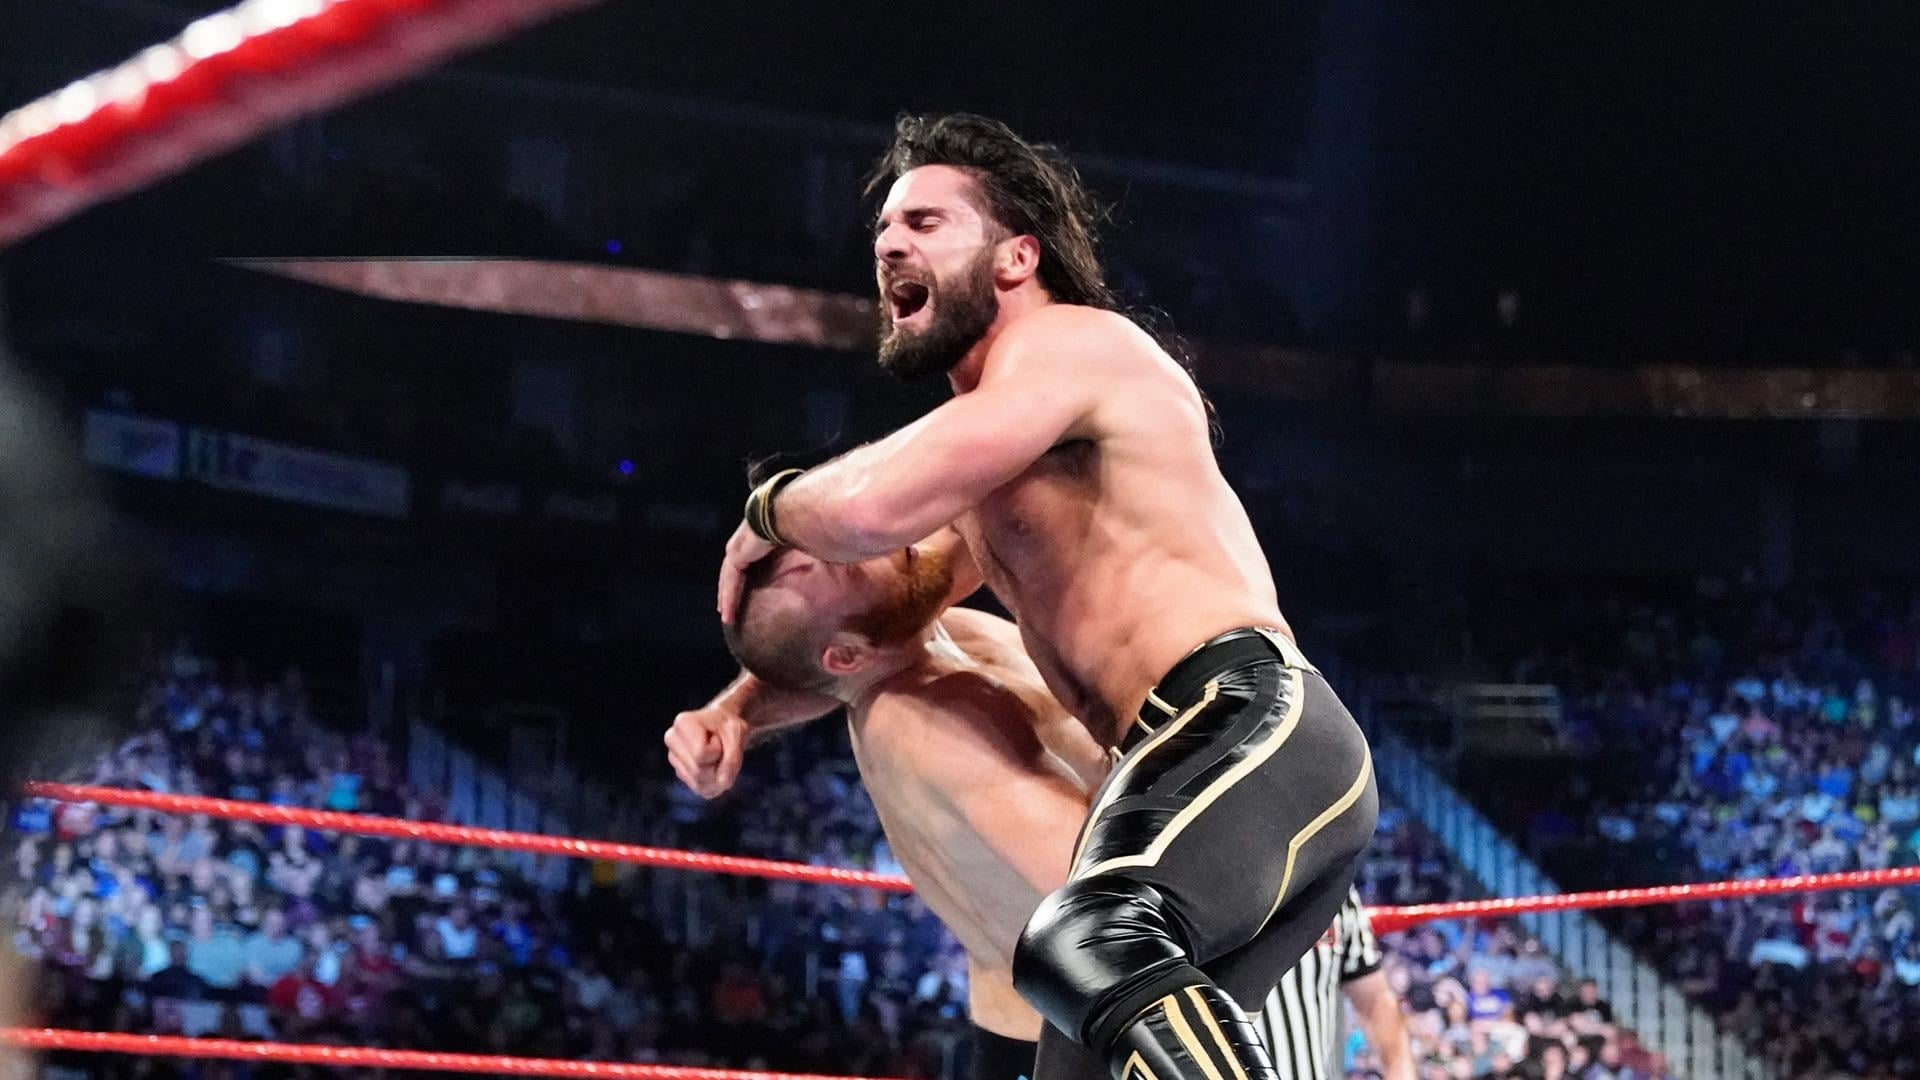 WWE Raw - Season 27 Episode 21 : May 27, 2019 (Kansas City, MO)